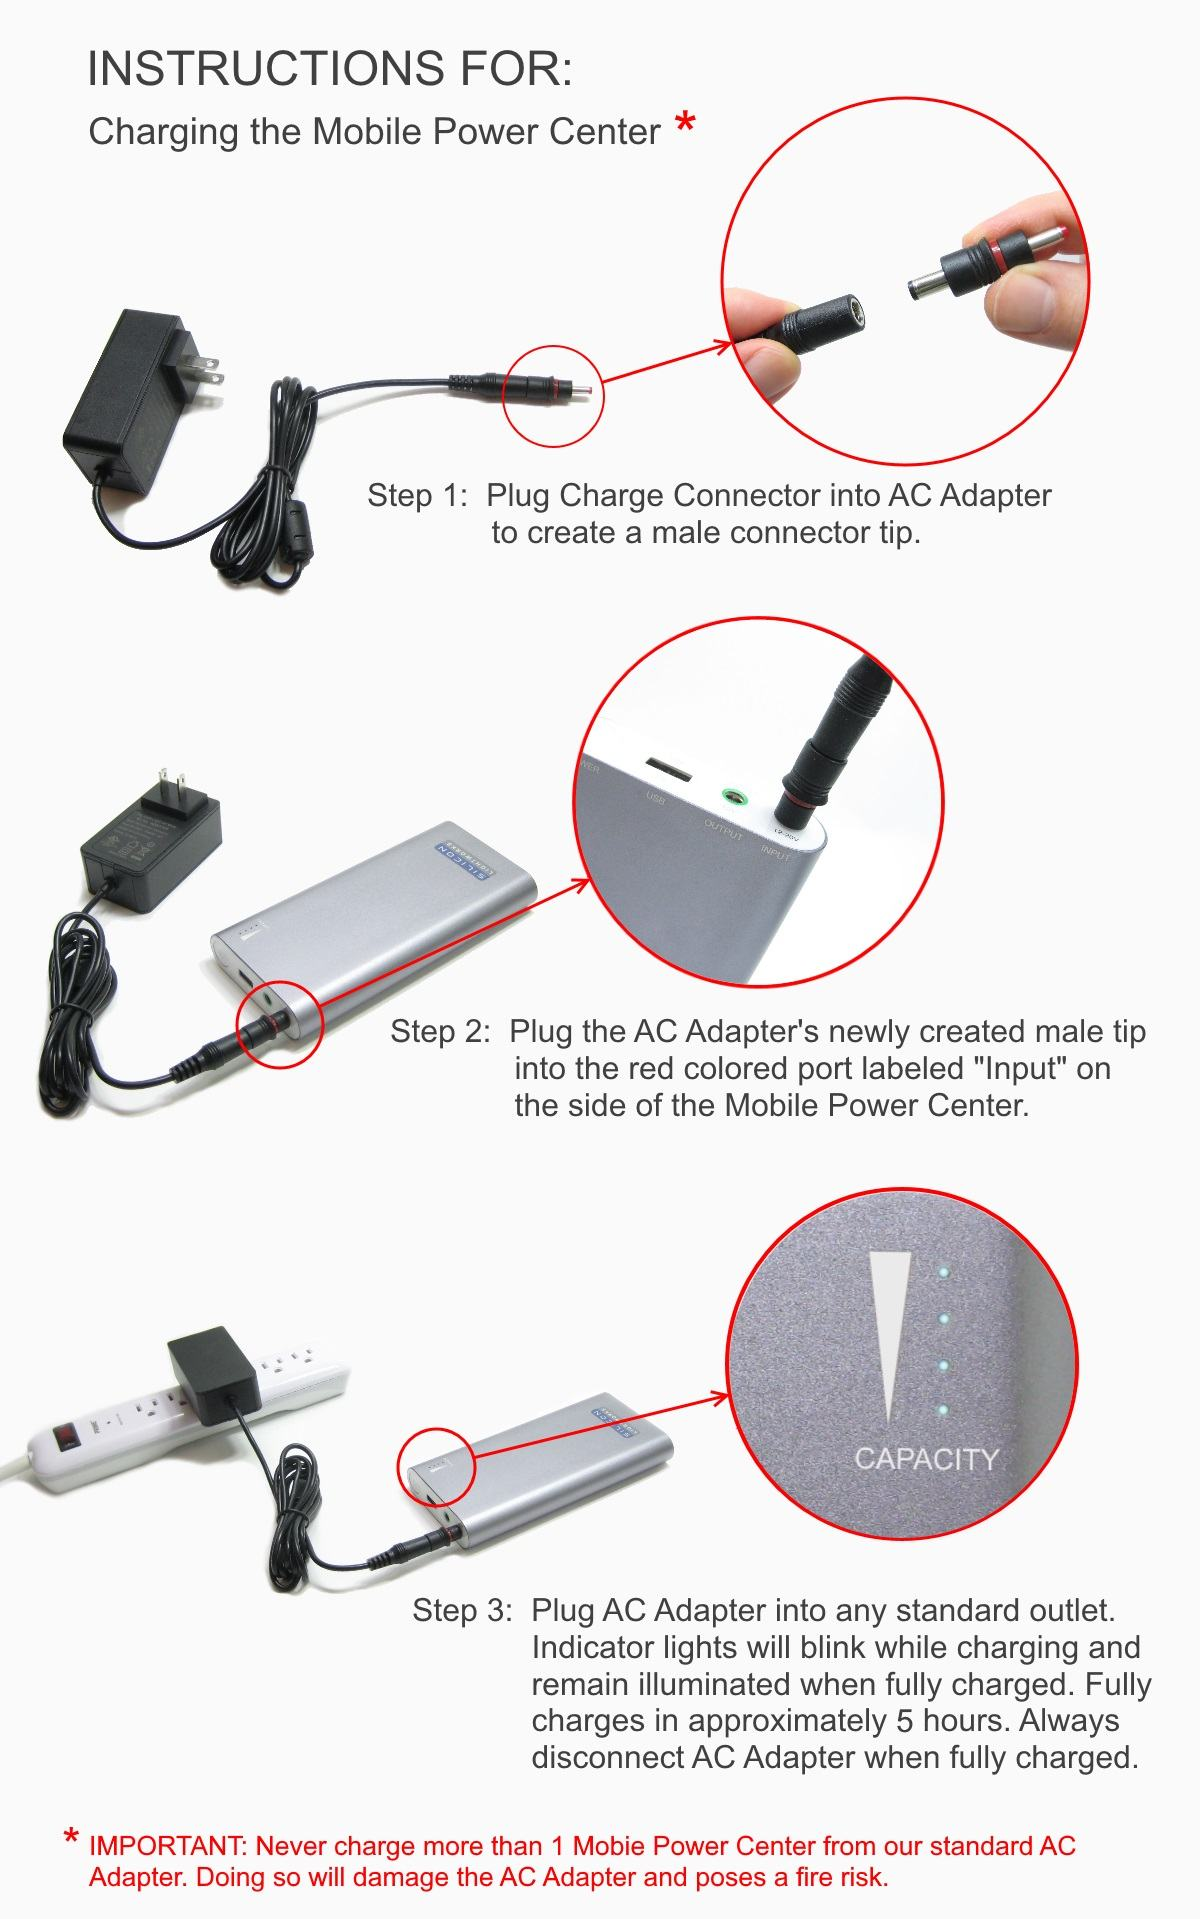 Exhibition Lighting - Batttery Charging Instructions